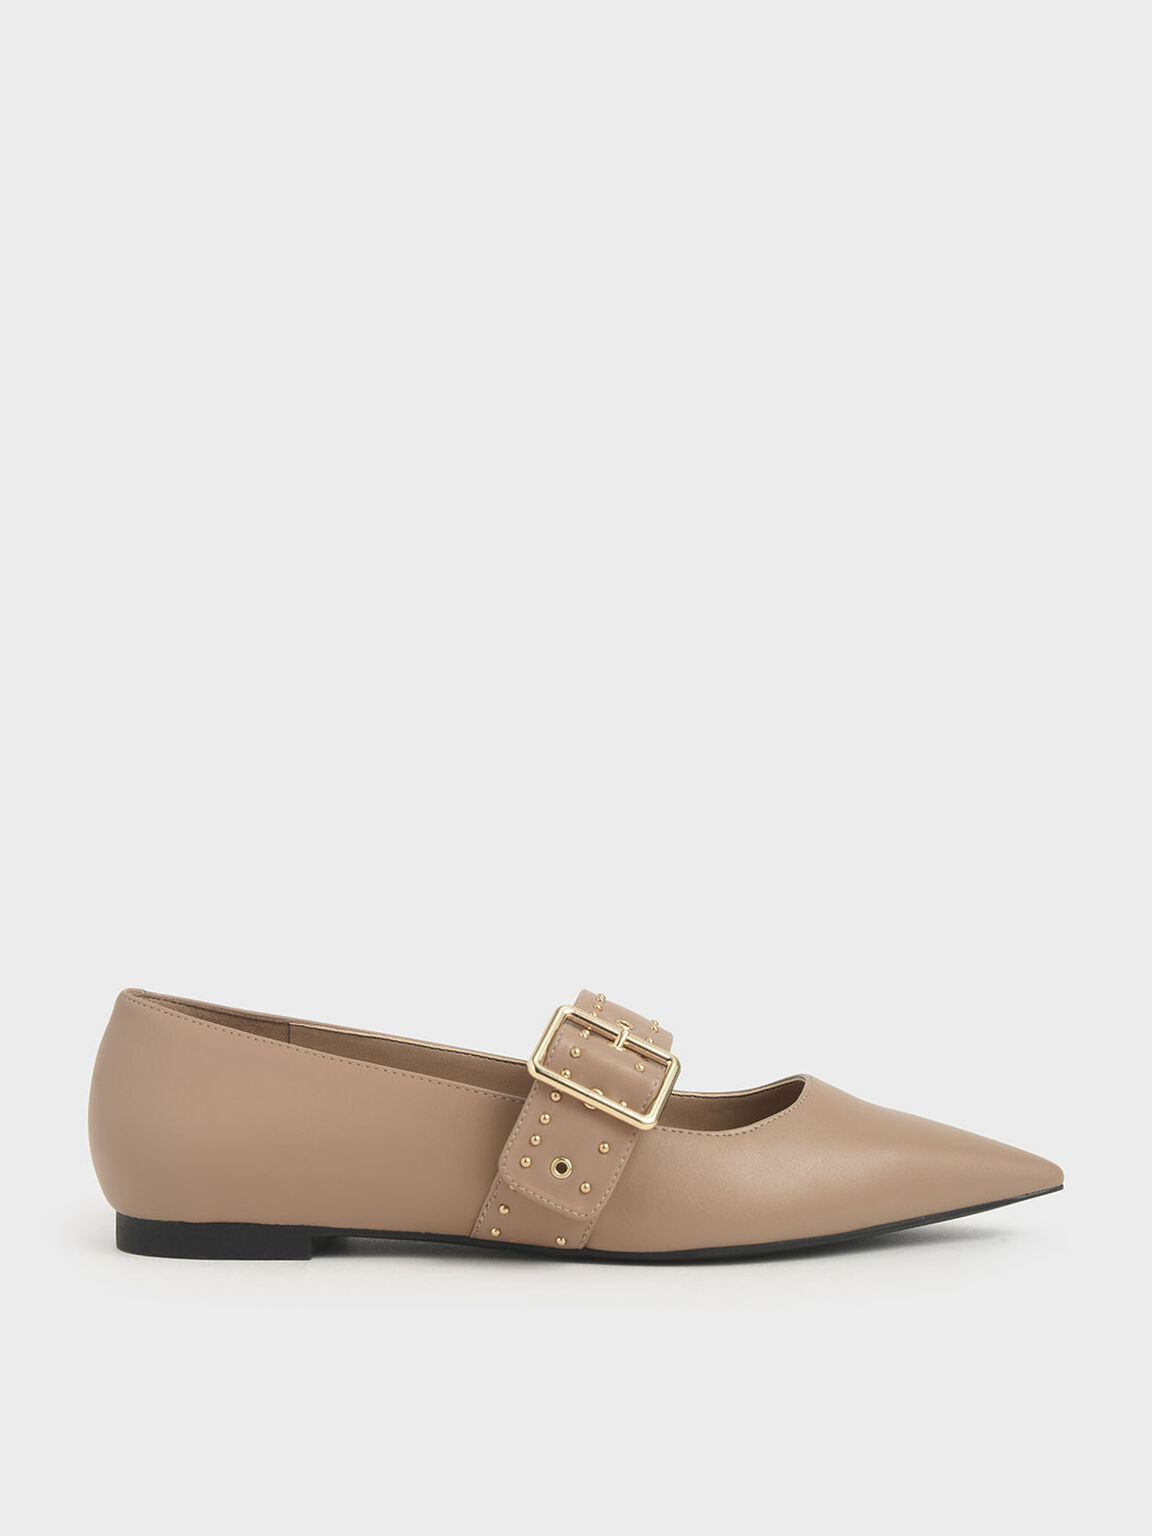 Studded Mary Jane Ballerina Flats, Nude, hi-res